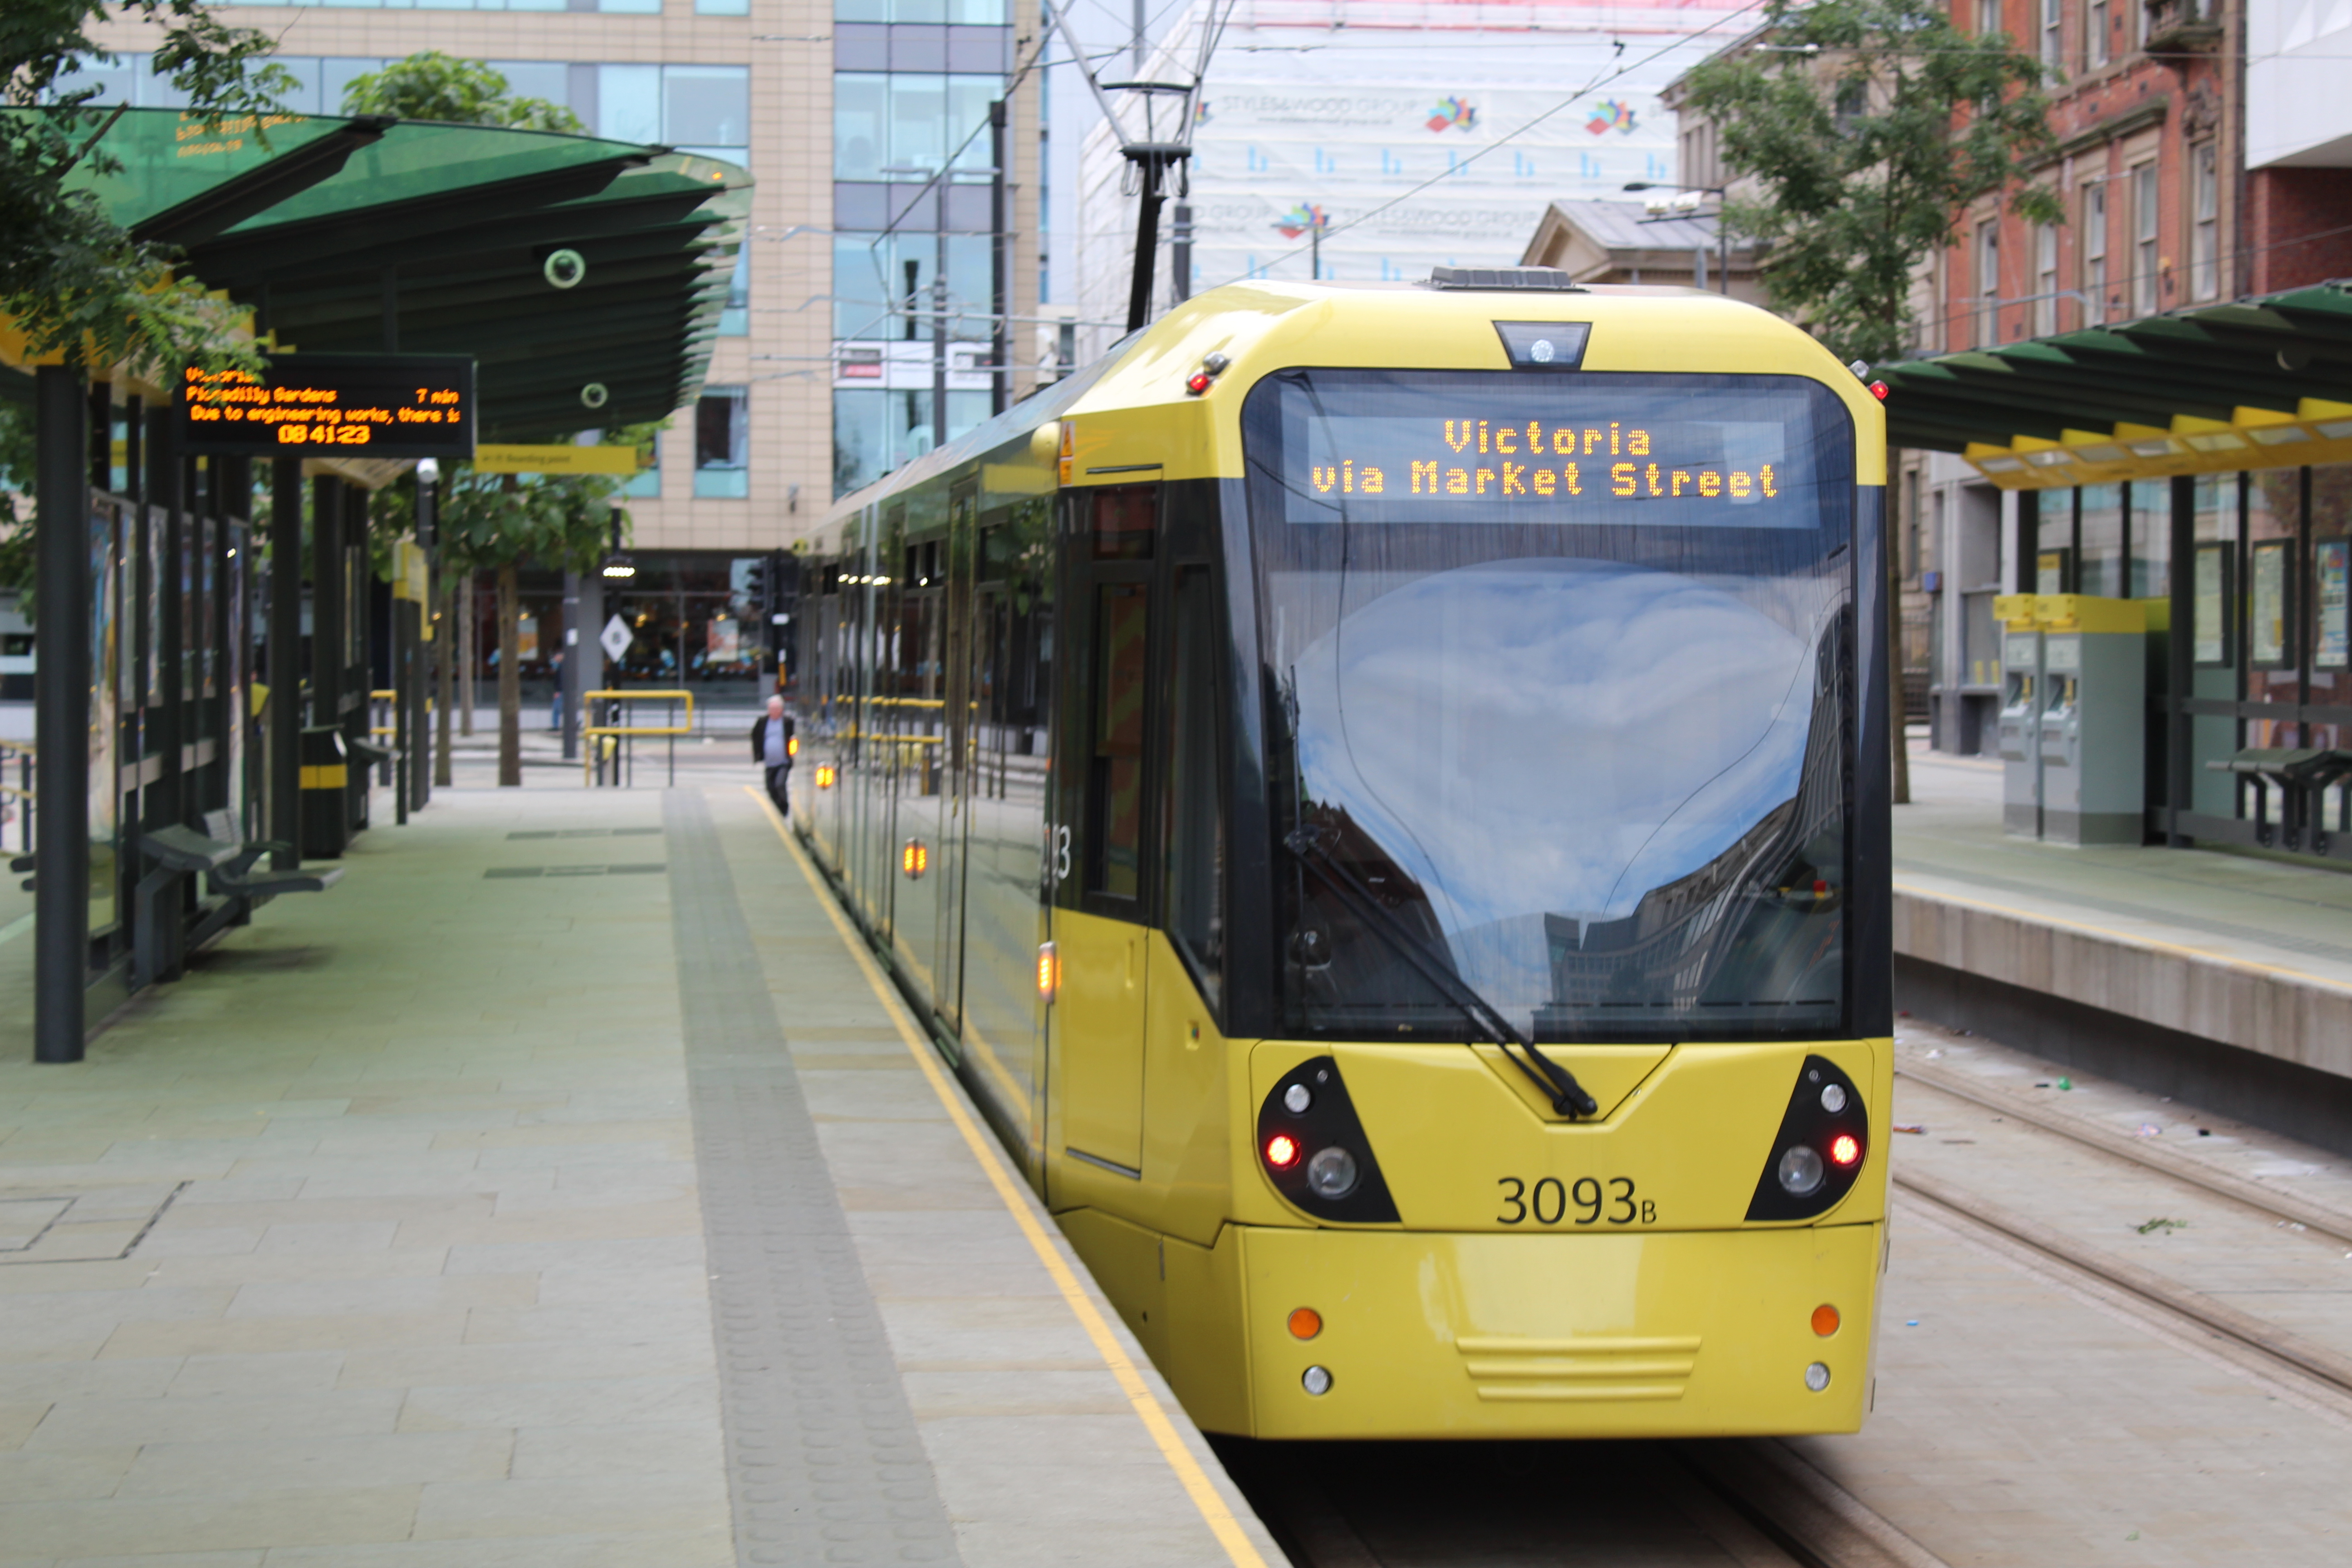 Travelling By Metrolink Tram To The Airport Manchester Airport